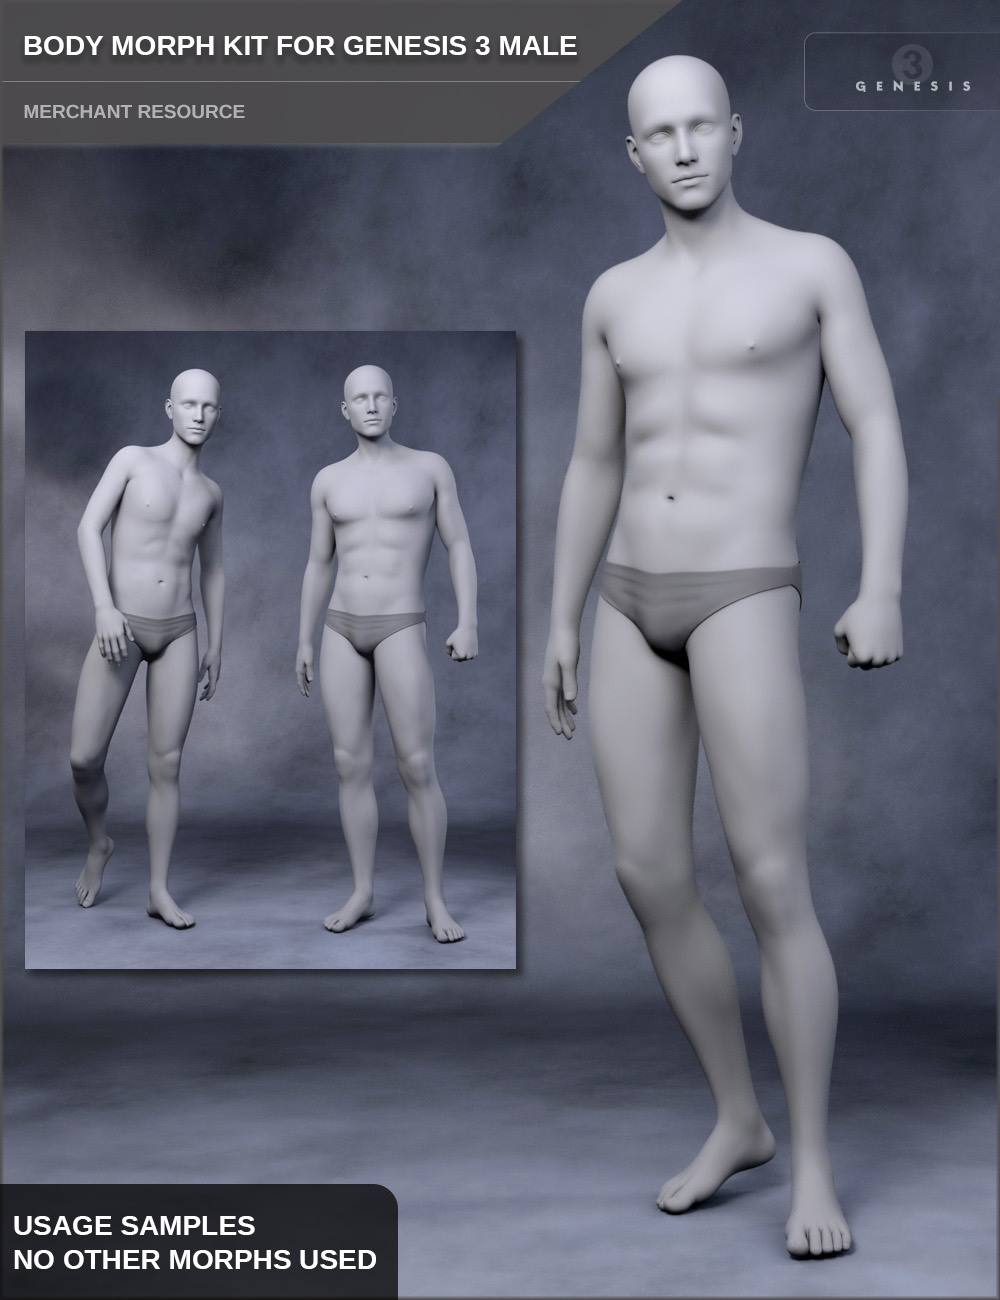 Body Morph Kit for Genesis 3 Male and Merchant Resource by: SF-Design, 3D Models by Daz 3D